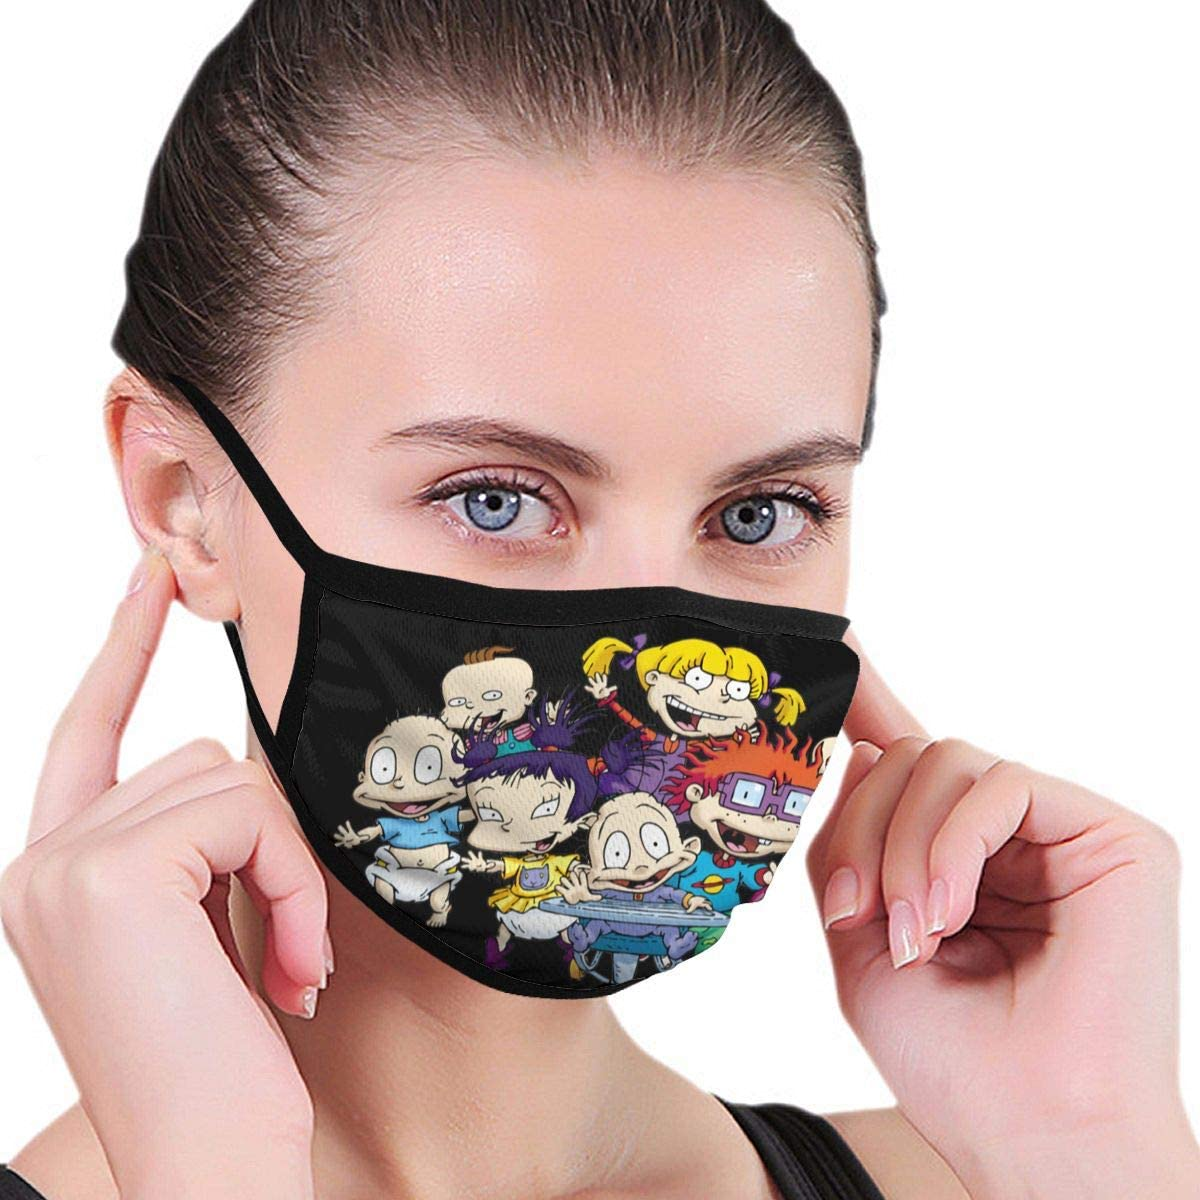 Wehoiweh Rugrats Dust Prevention Face Cover Mouth Cover Bandana Cool Lightweight